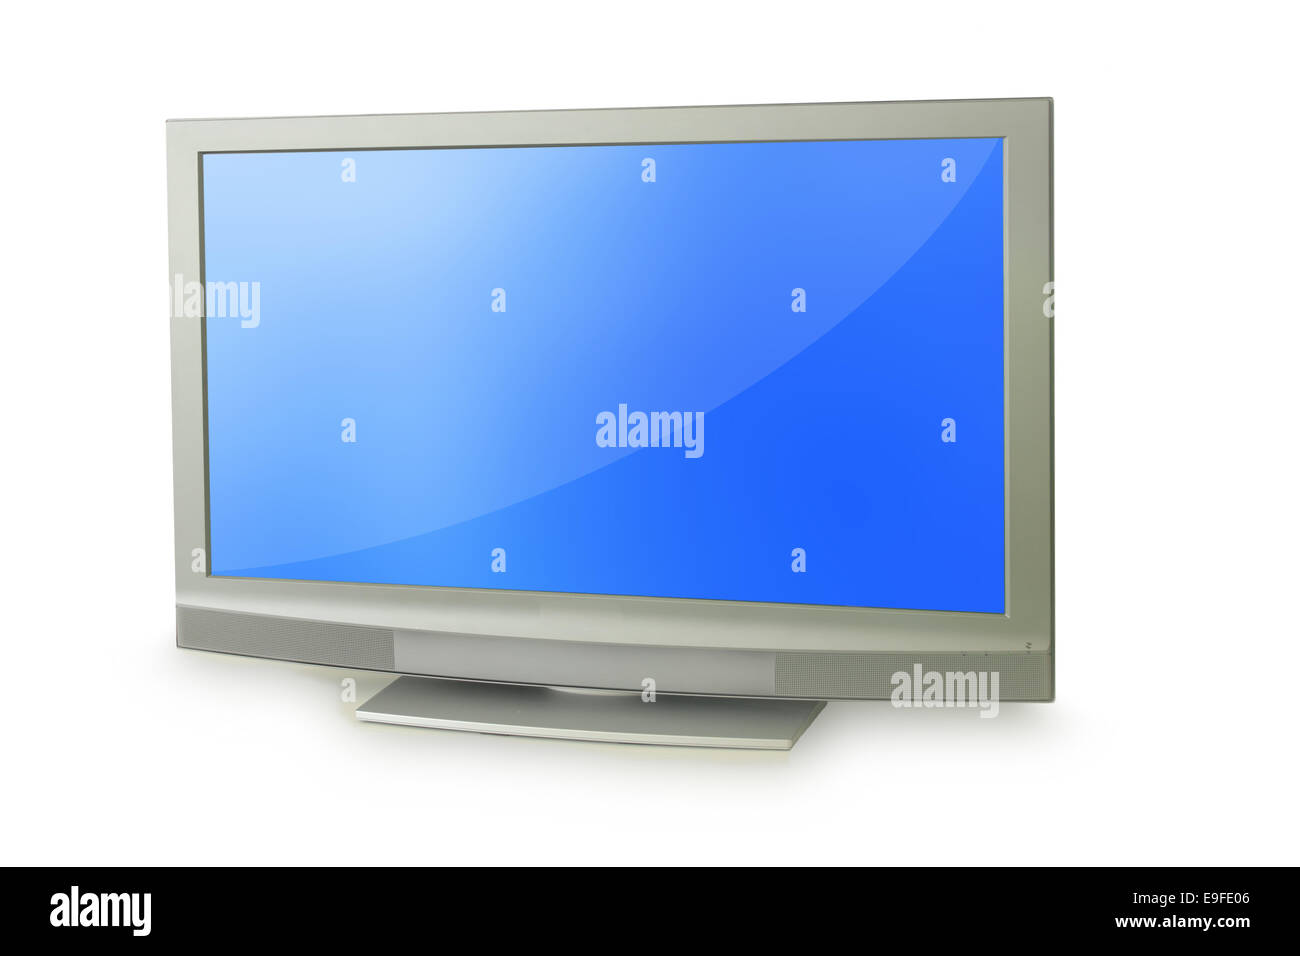 Plasma Tv Cut Out Stock Images & Pictures - Alamy